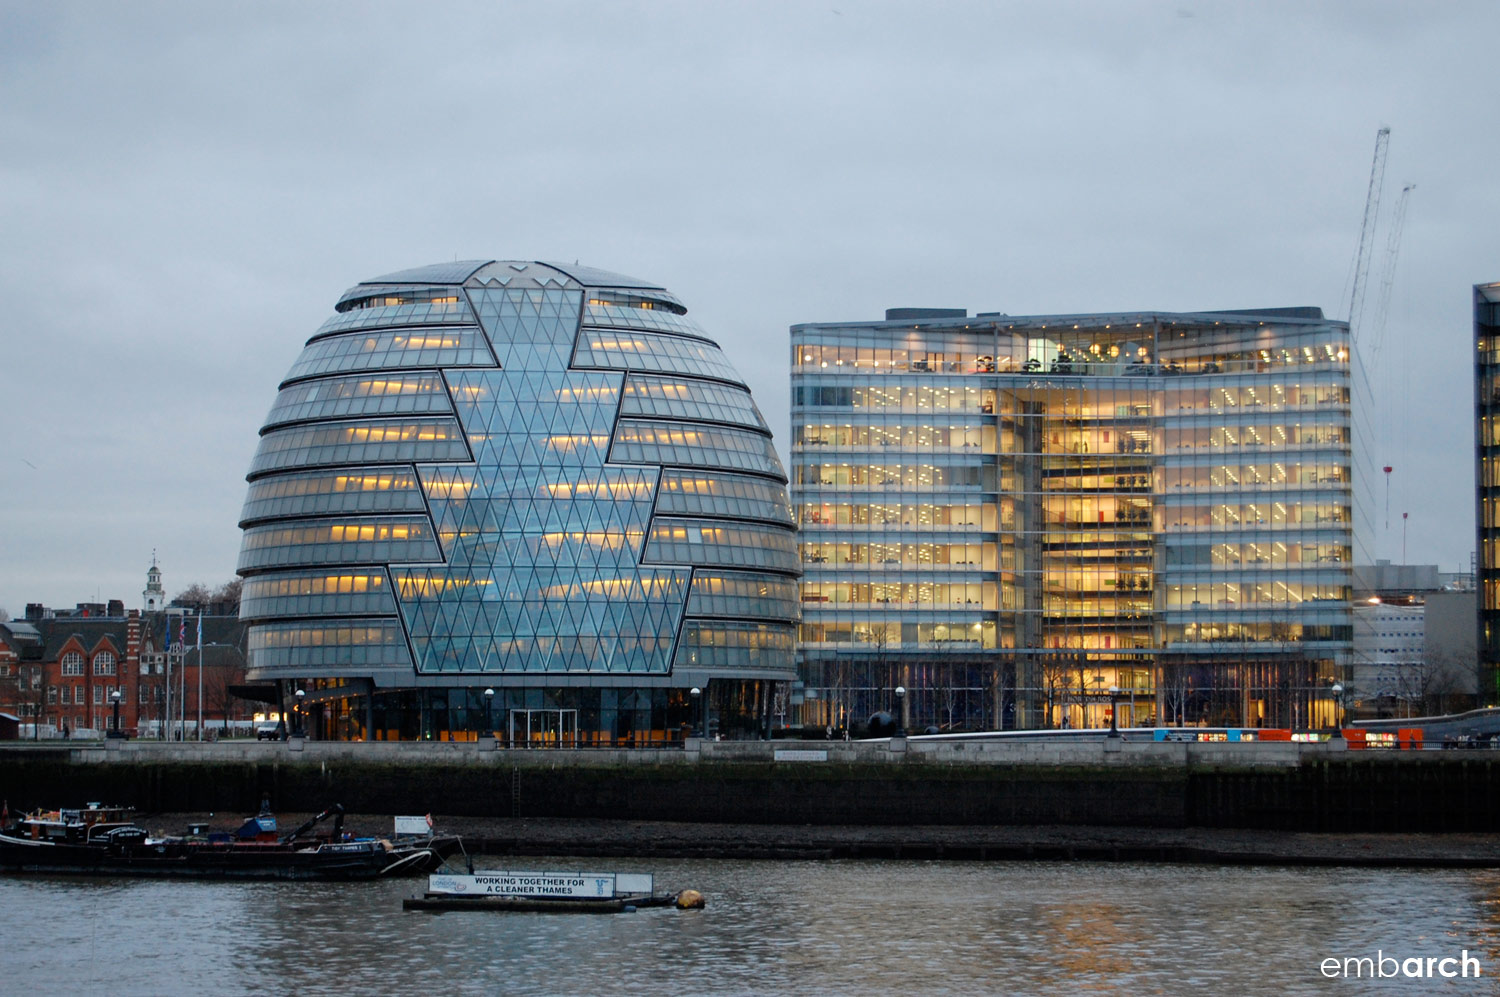 London City Hall - view of the building at dusk from across the River Thames.